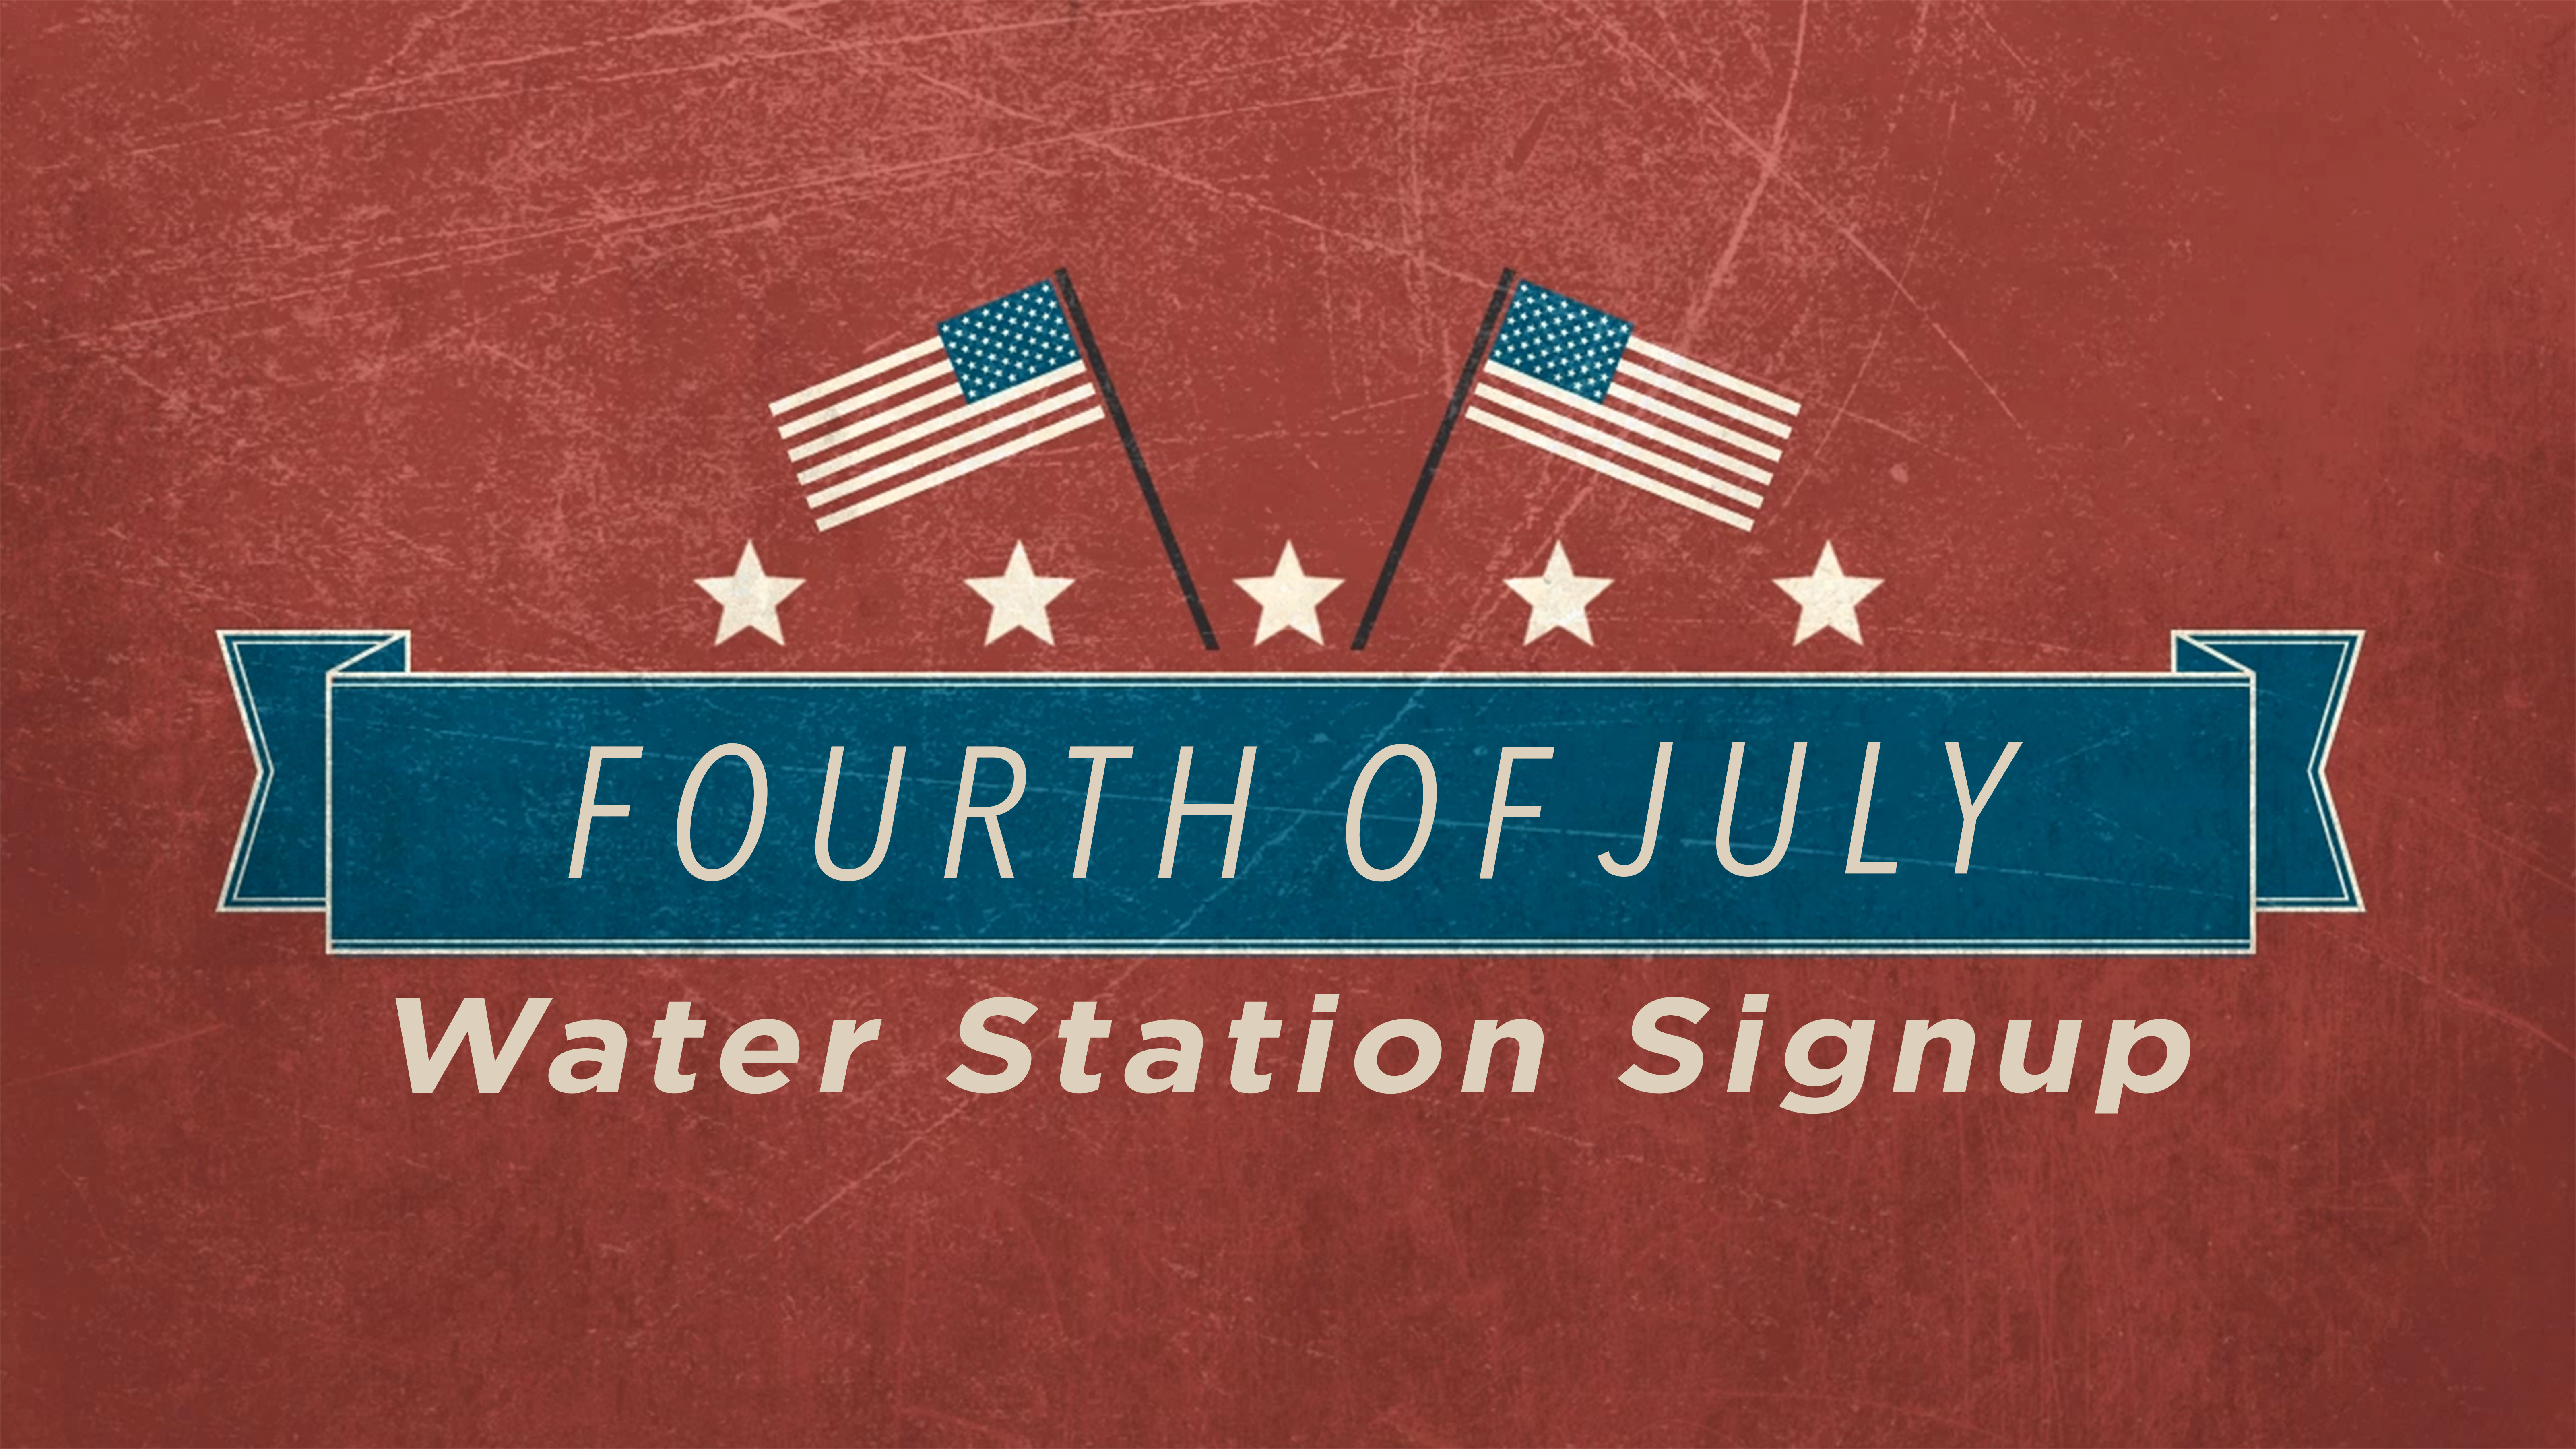 4th of july water station